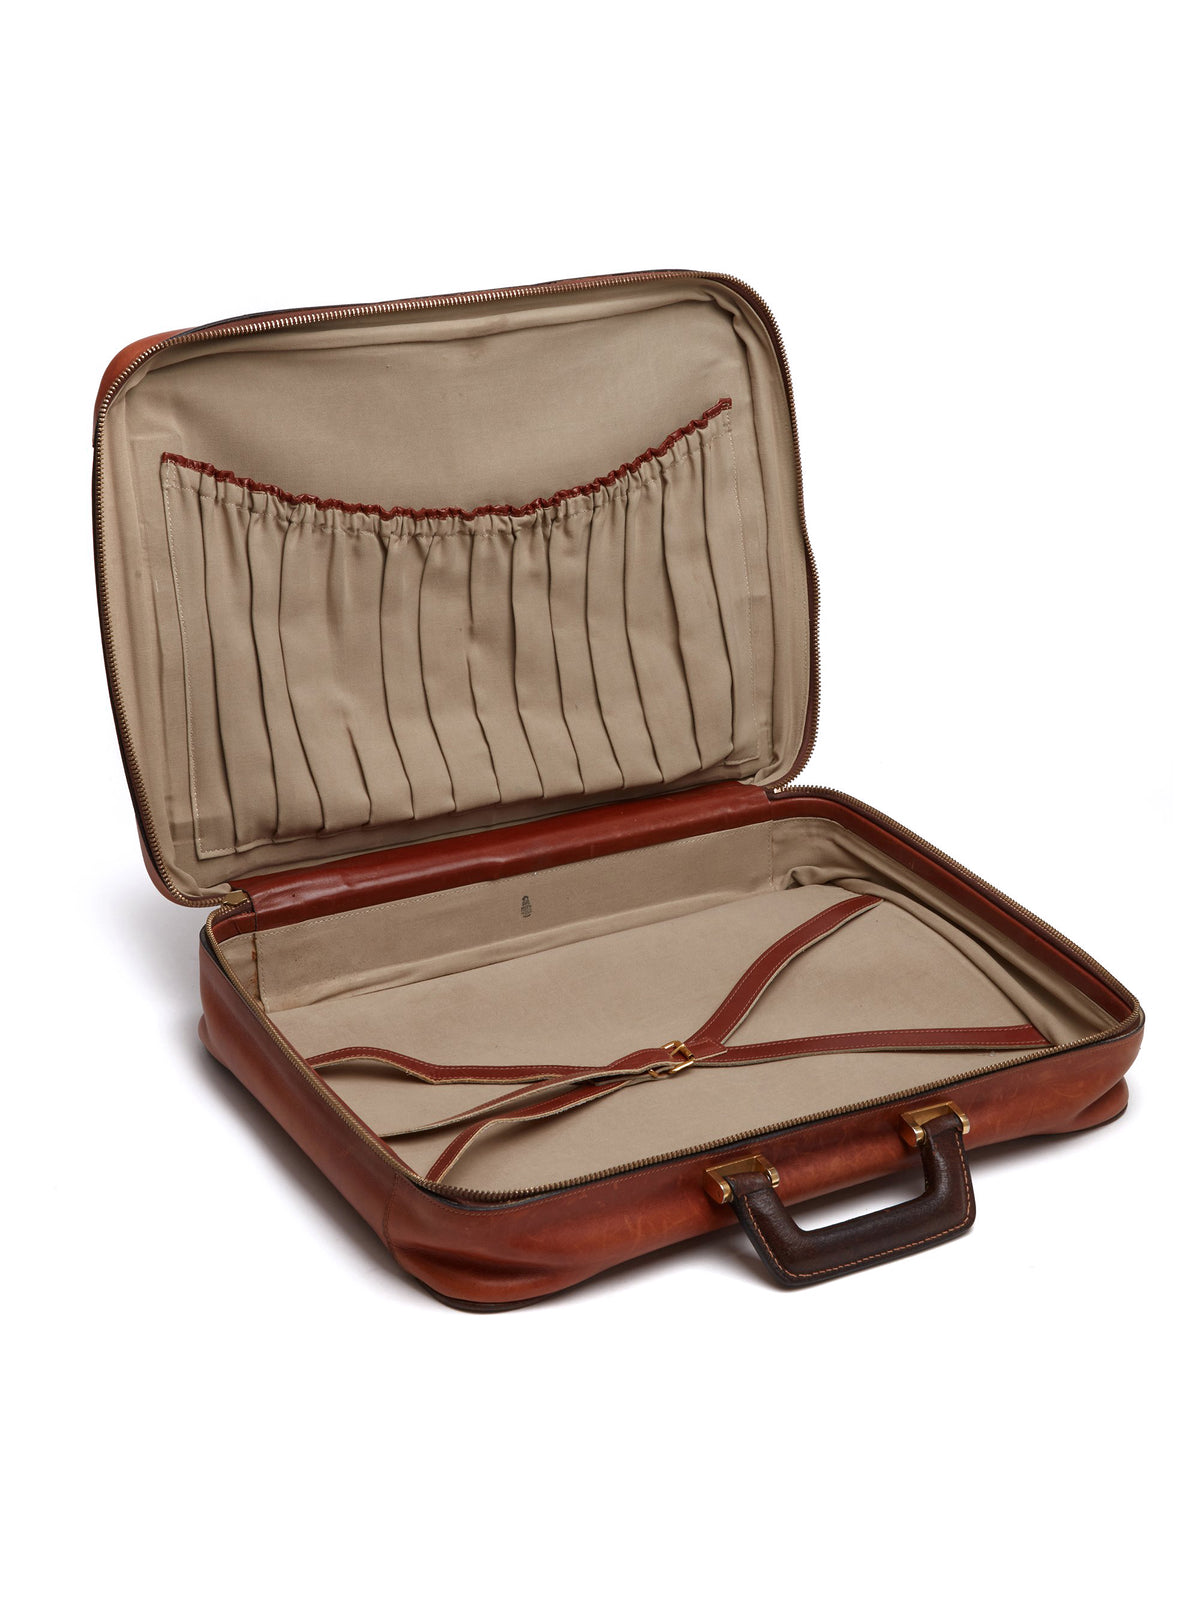 Mark Cross Vintage Leather Suitcase Chocolate Interior